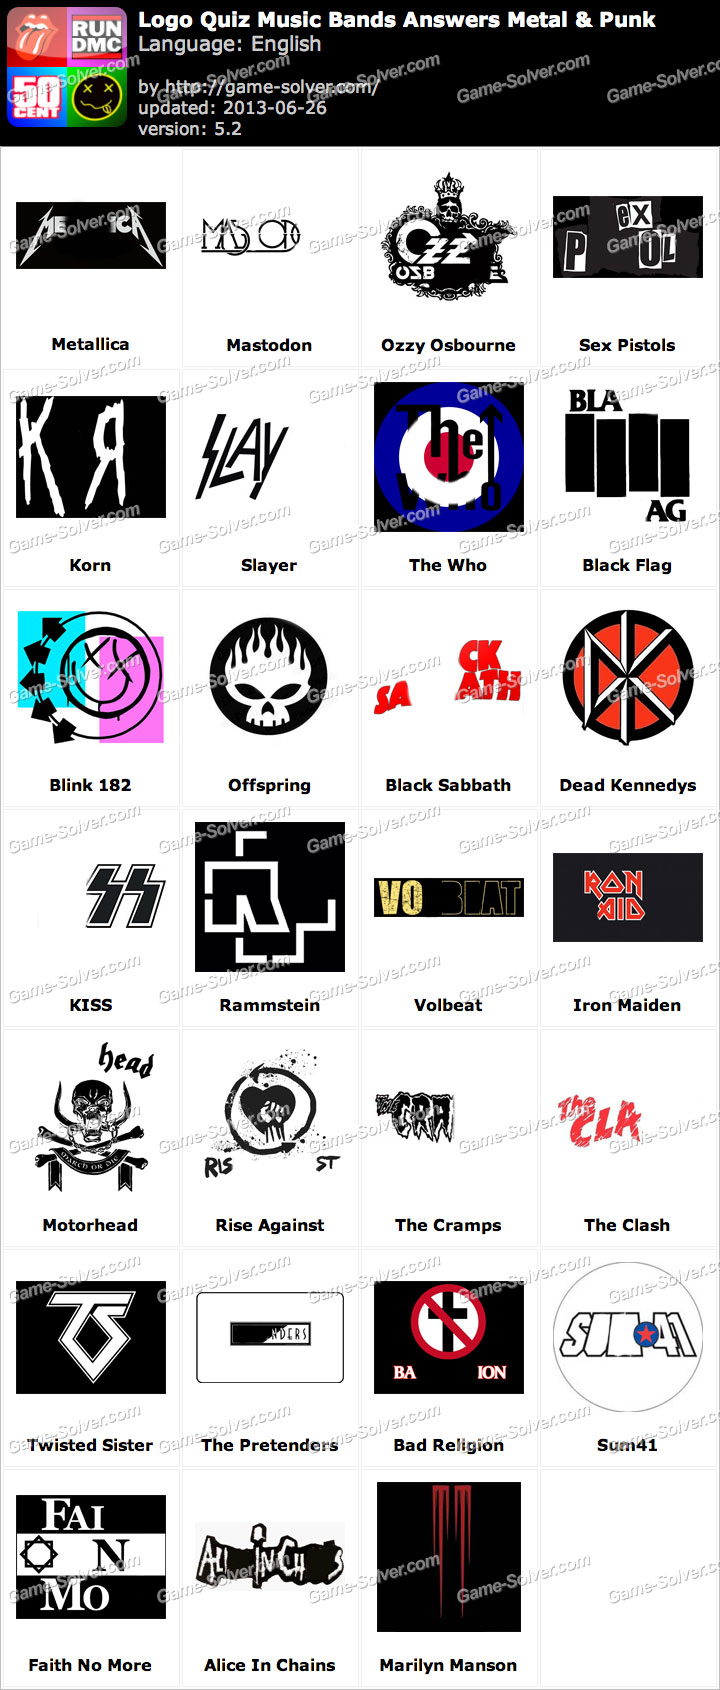 Rock Music Bands Logo Quiz Answers